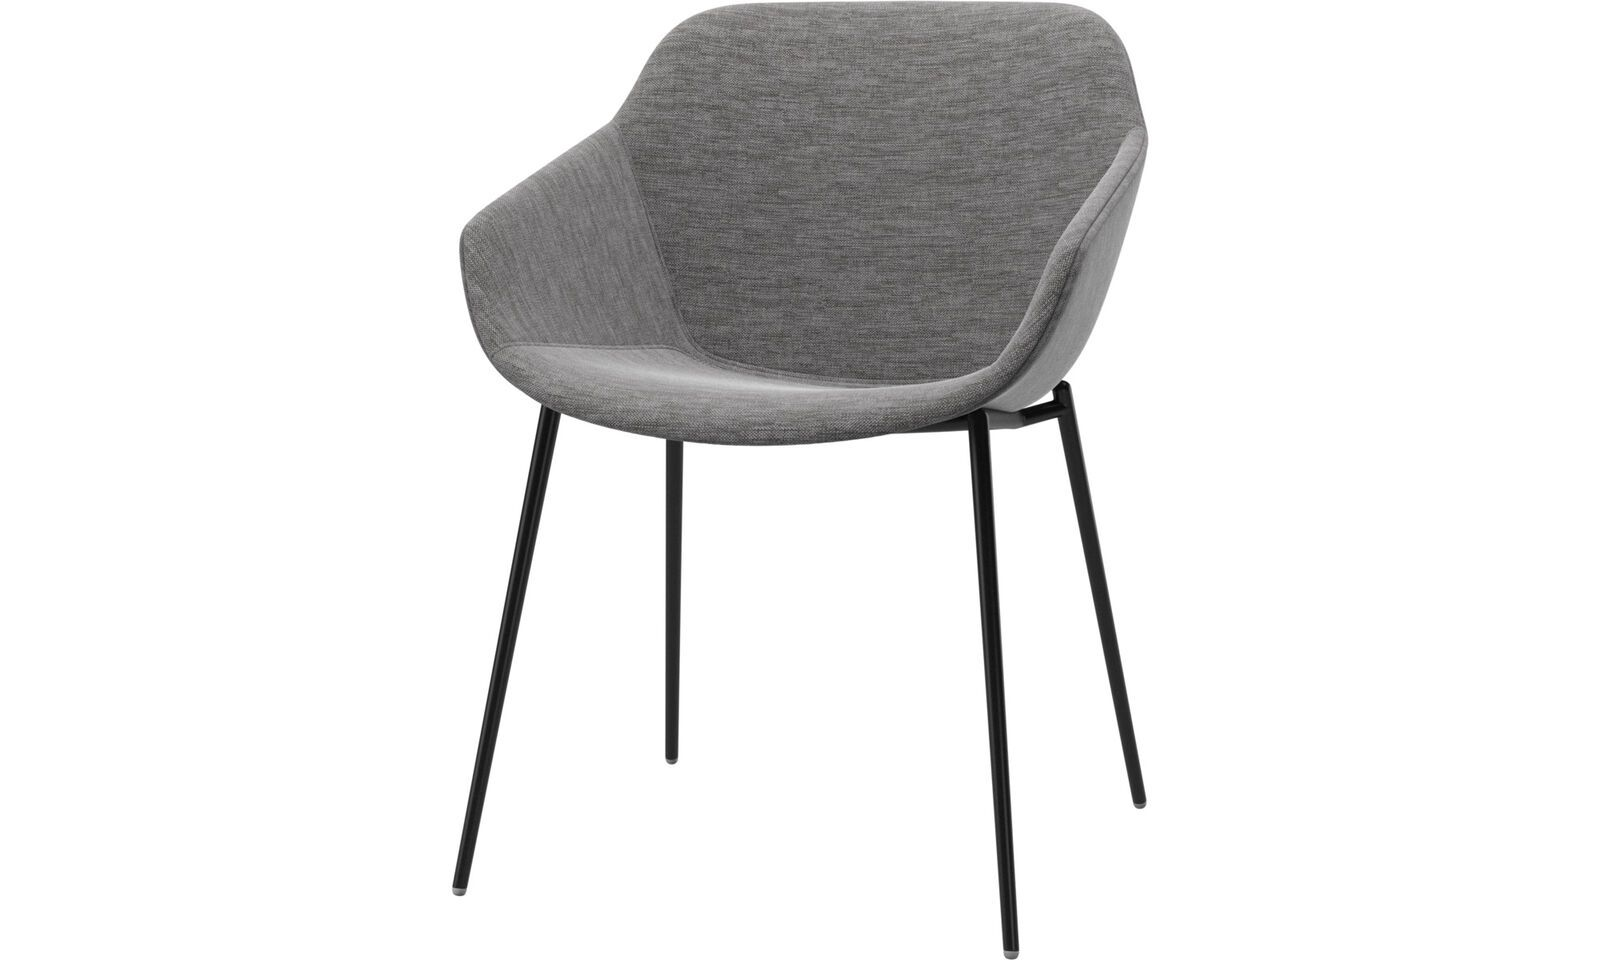 Dining chairs   Vienna chair   Grey   Fabric   Boconcept ...